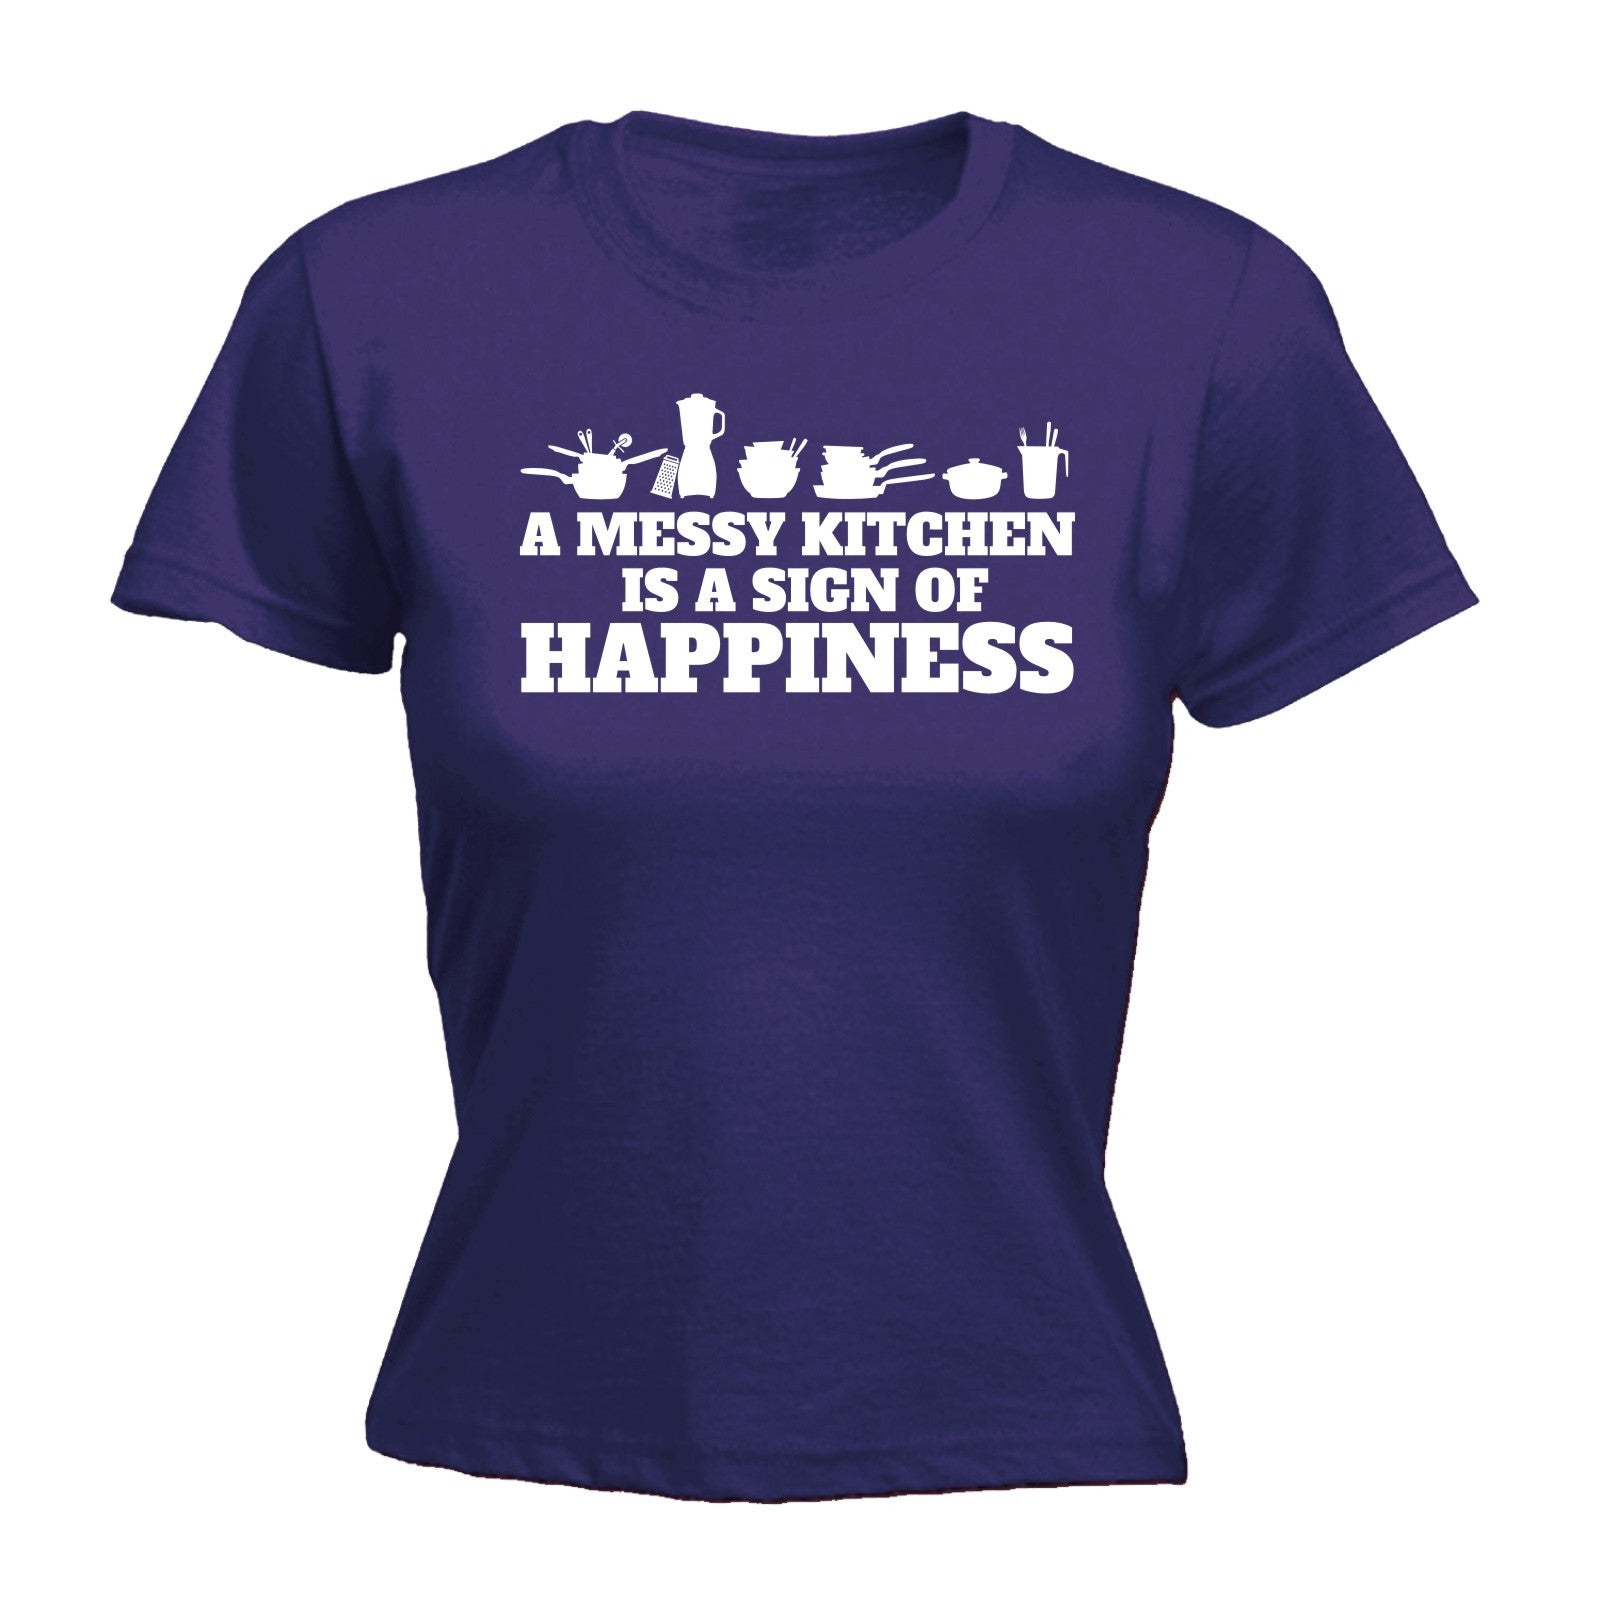 A Messy Kitchen Is A Sign Of Happiness: MESSY KITCHEN IS A SIGN OF HAPPINESS WOMENS T-SHIRT Chef